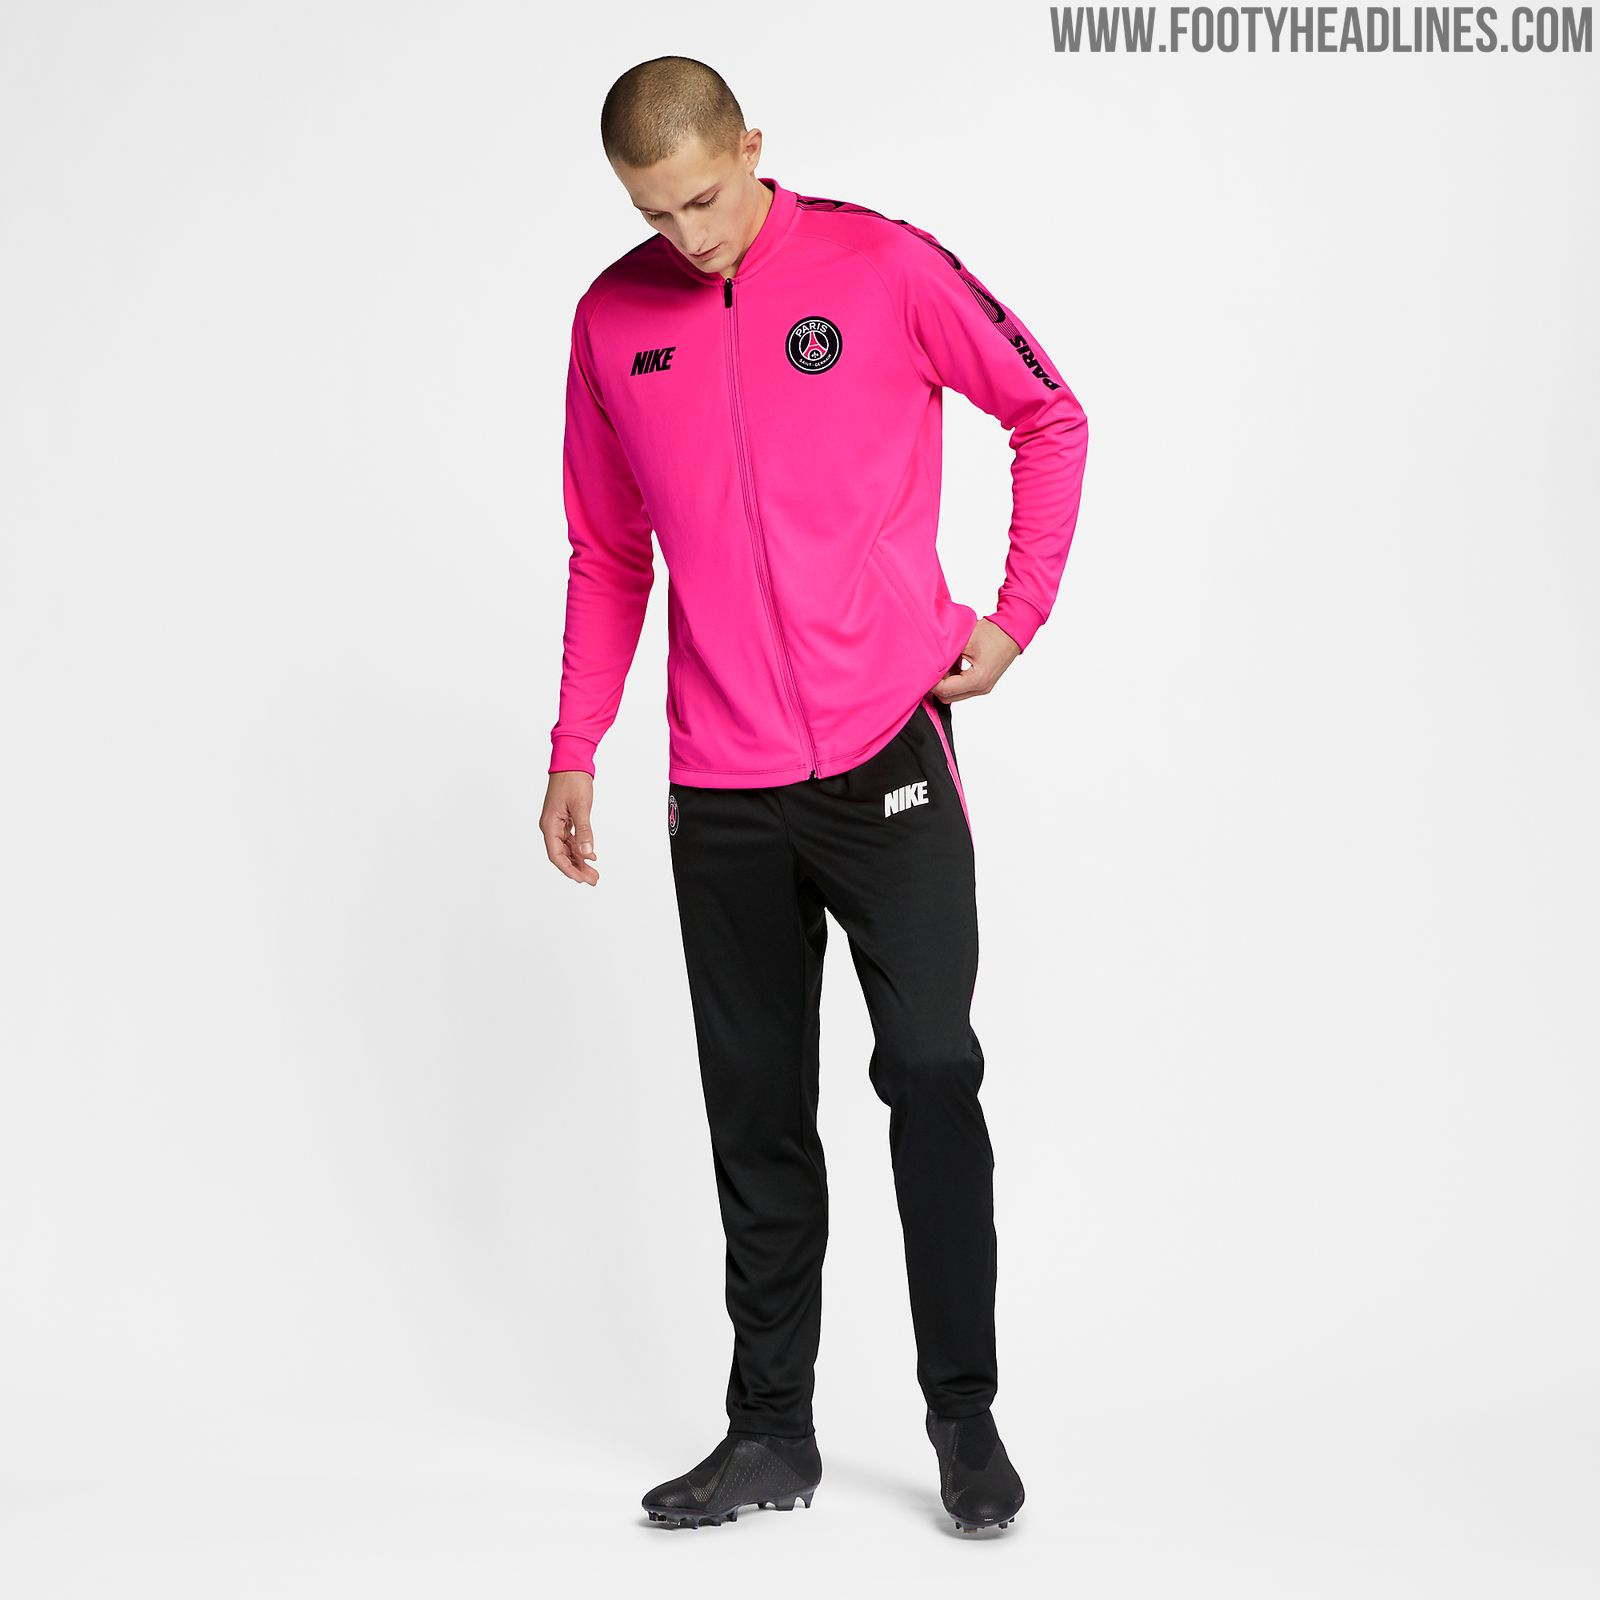 new nike style  pink psg 2019 training kit released